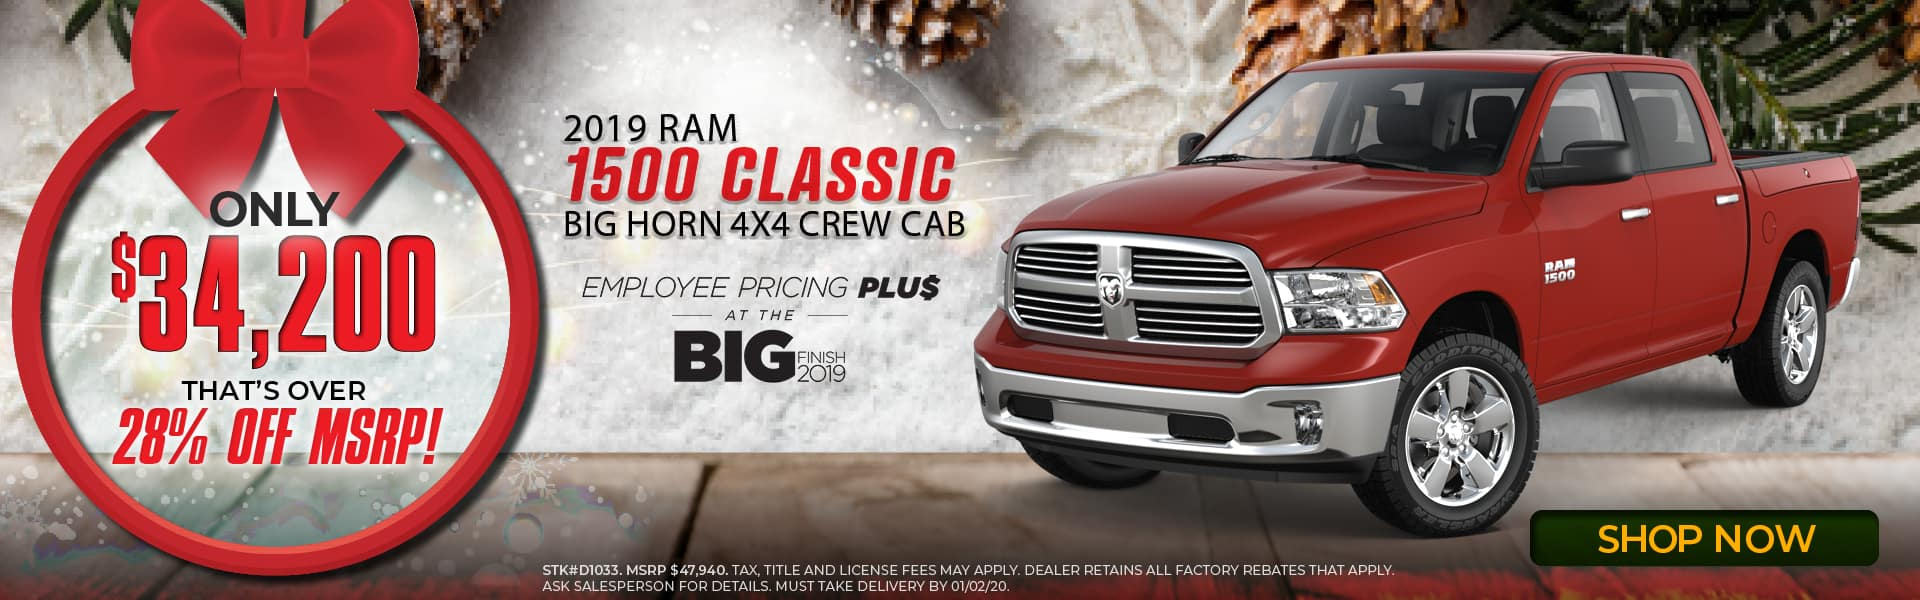 2019 RAM 1500 Classic Express Special in Middlesboro, KY